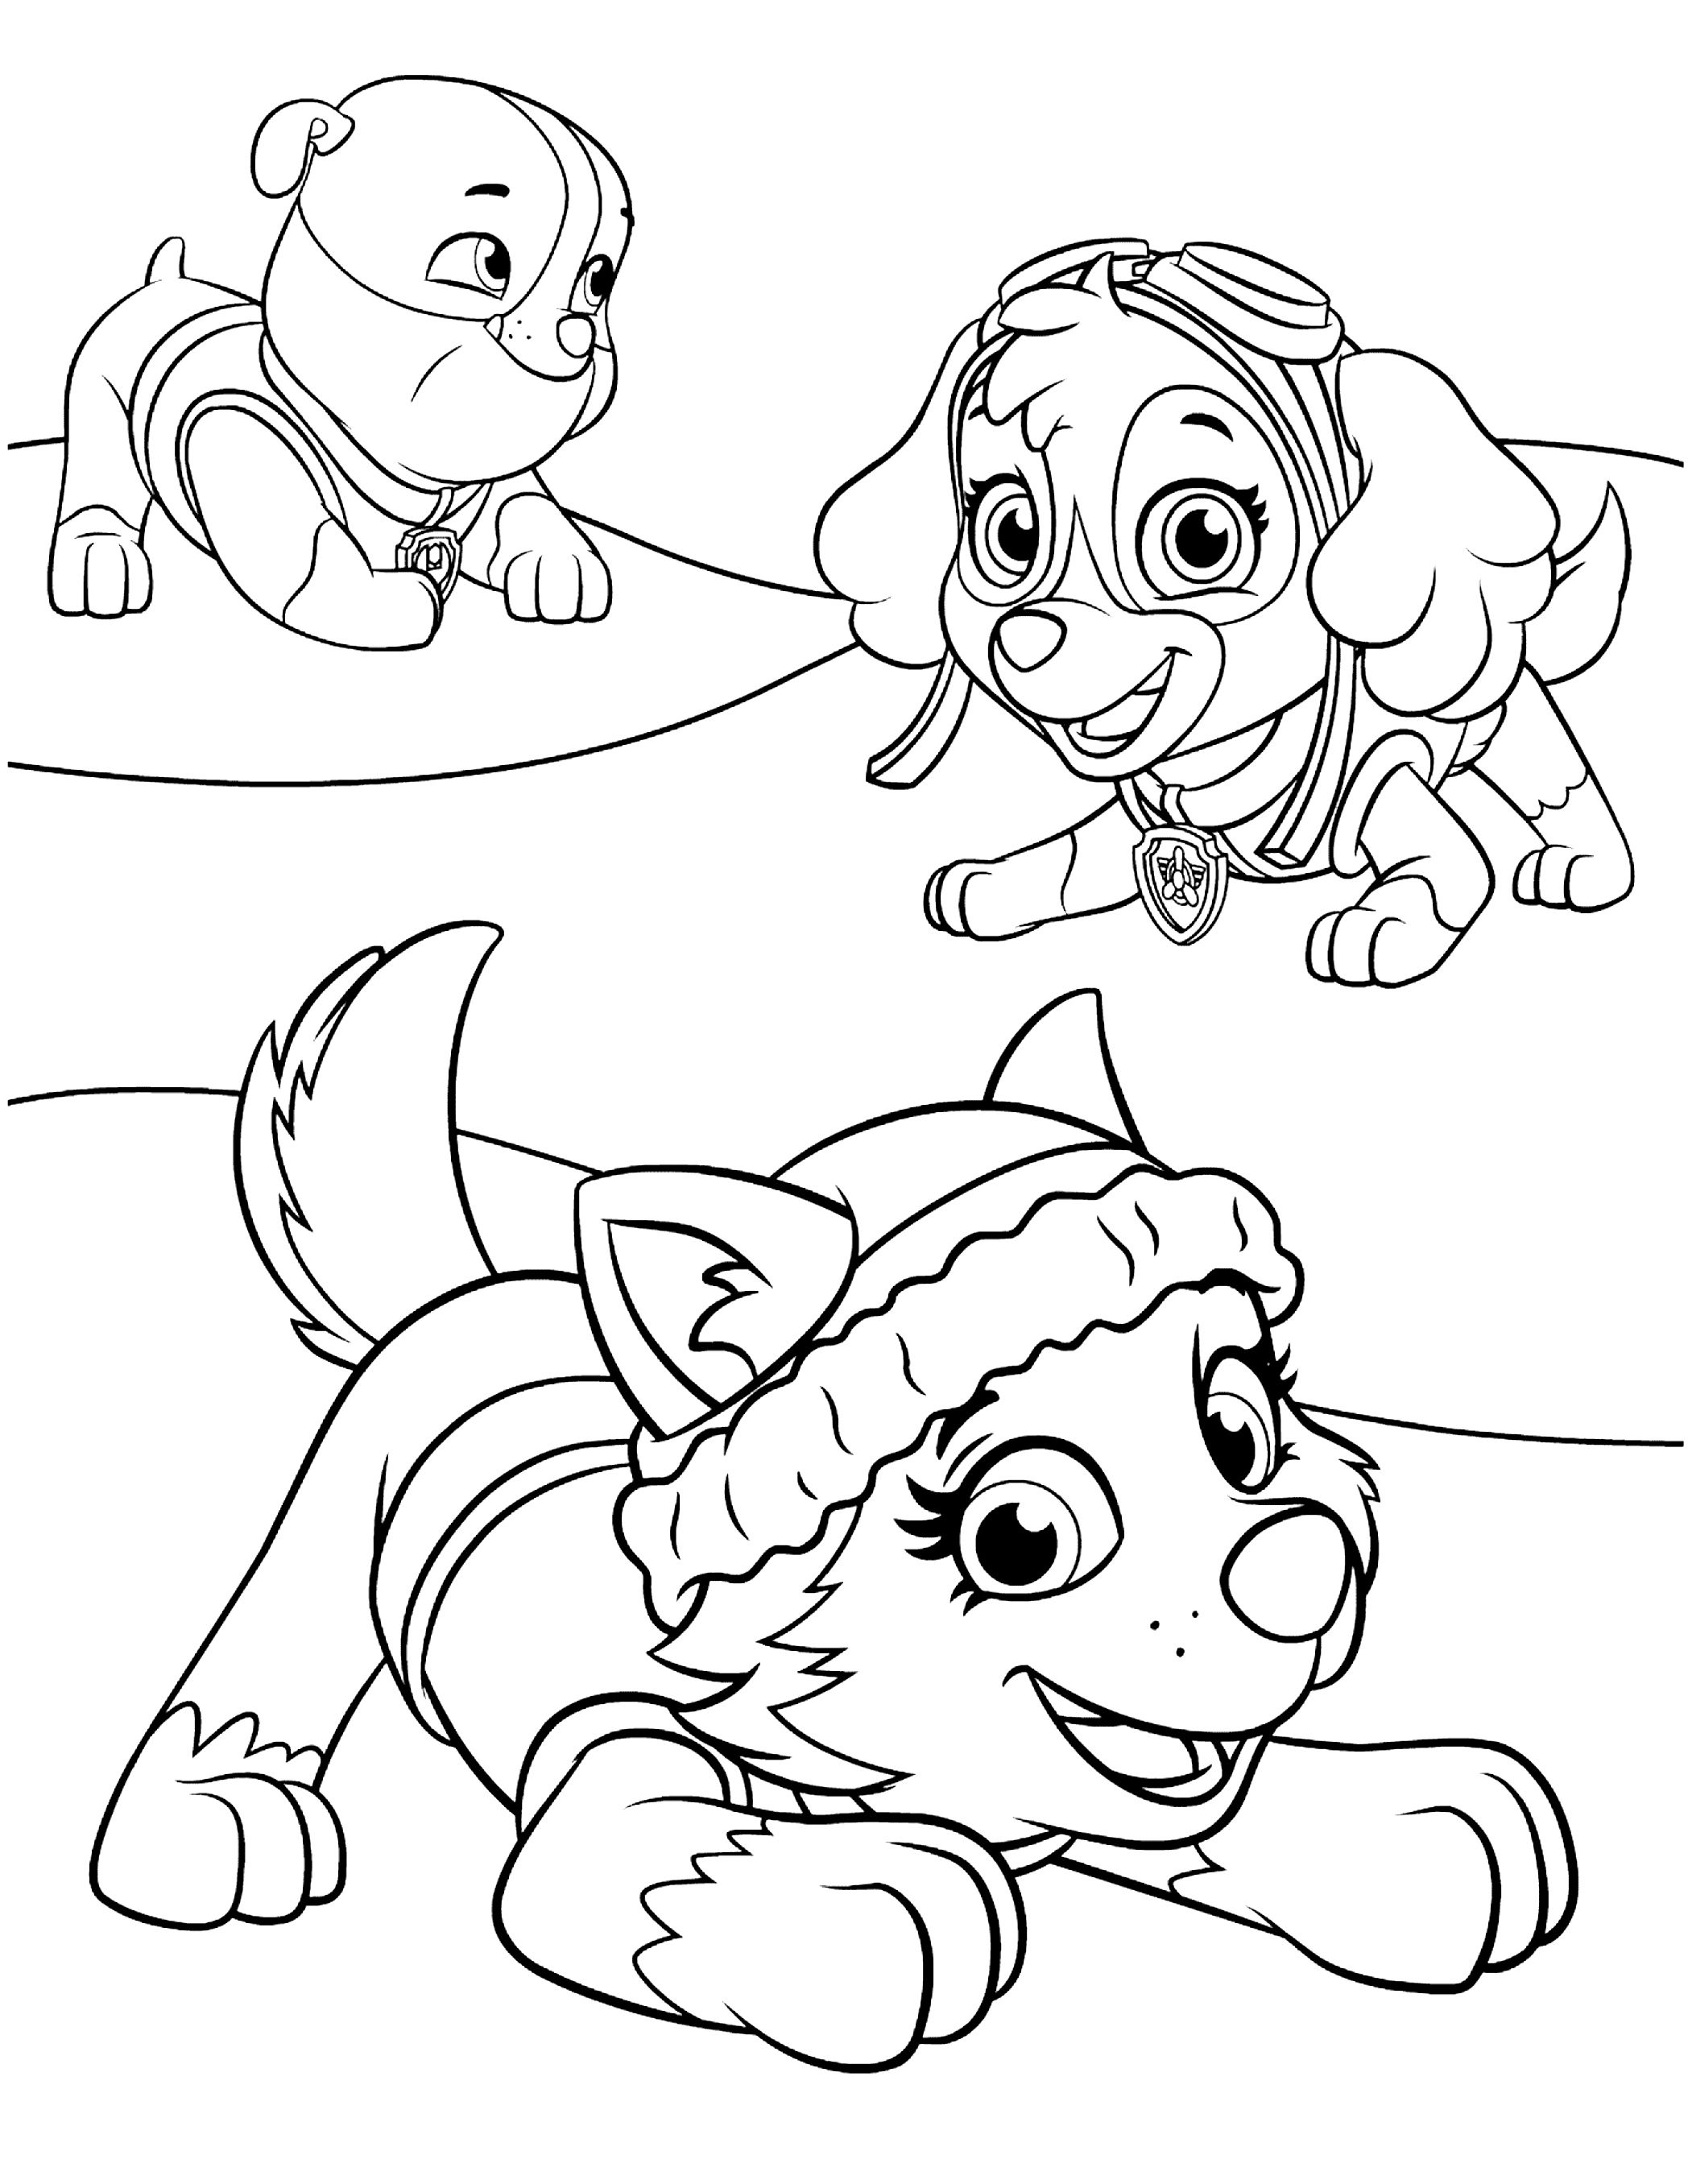 50 paw patrol coloring pages for kids  paw patrol